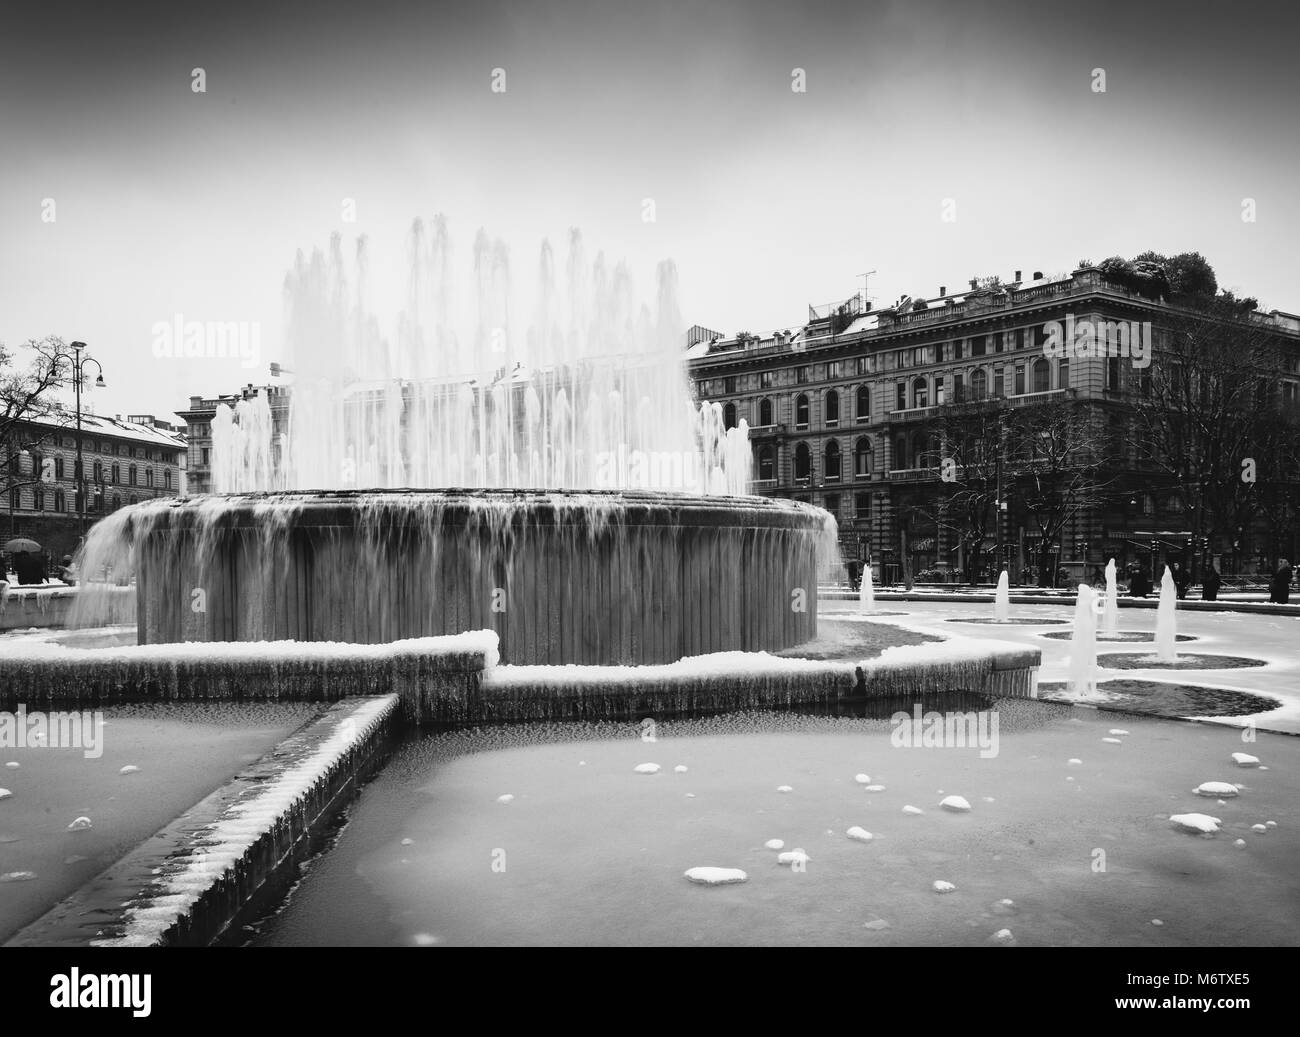 Fountain in front of Sforza Castle, Italian: Castello Sforzesco, - Stock Image